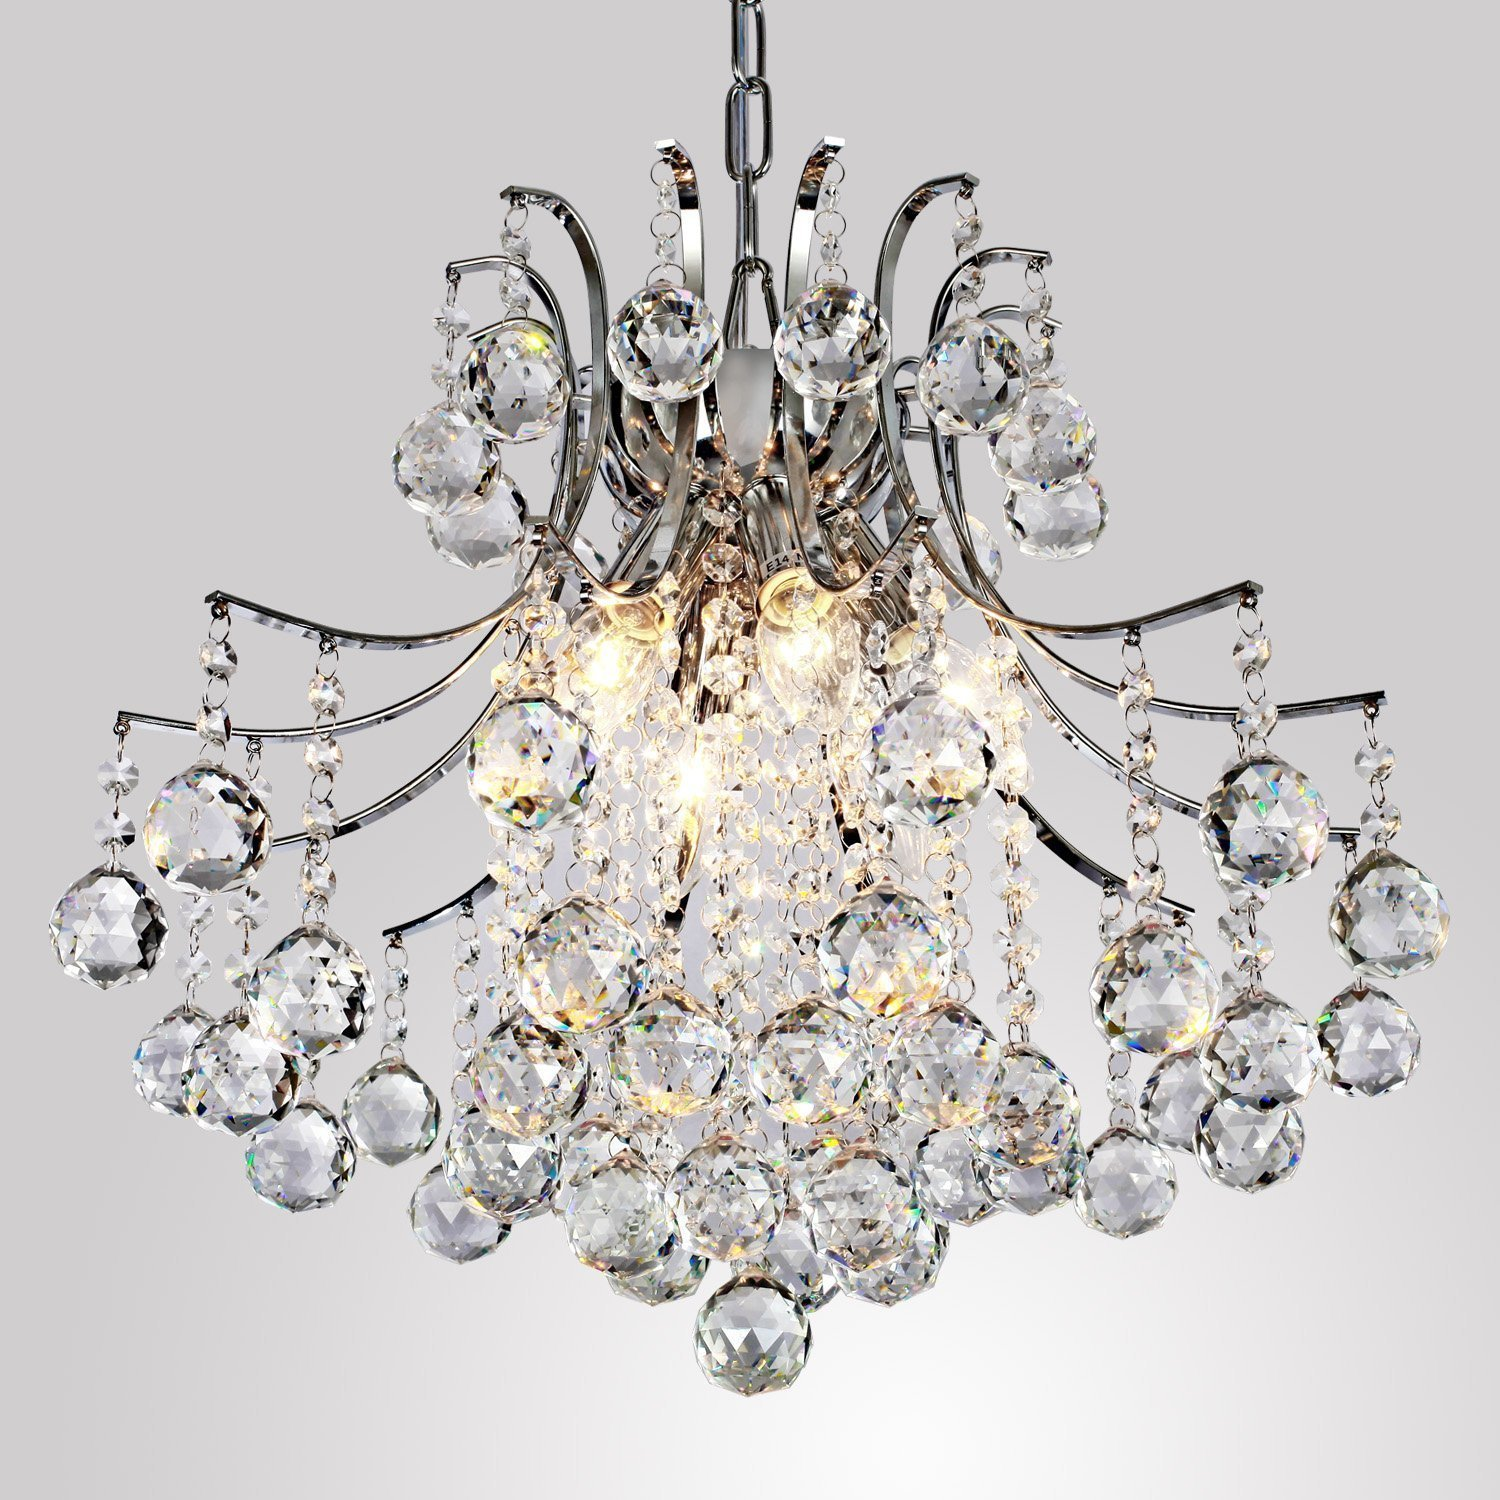 ALFRED Modern Crystal Chandelier with 6 Lights Modern Ceiling